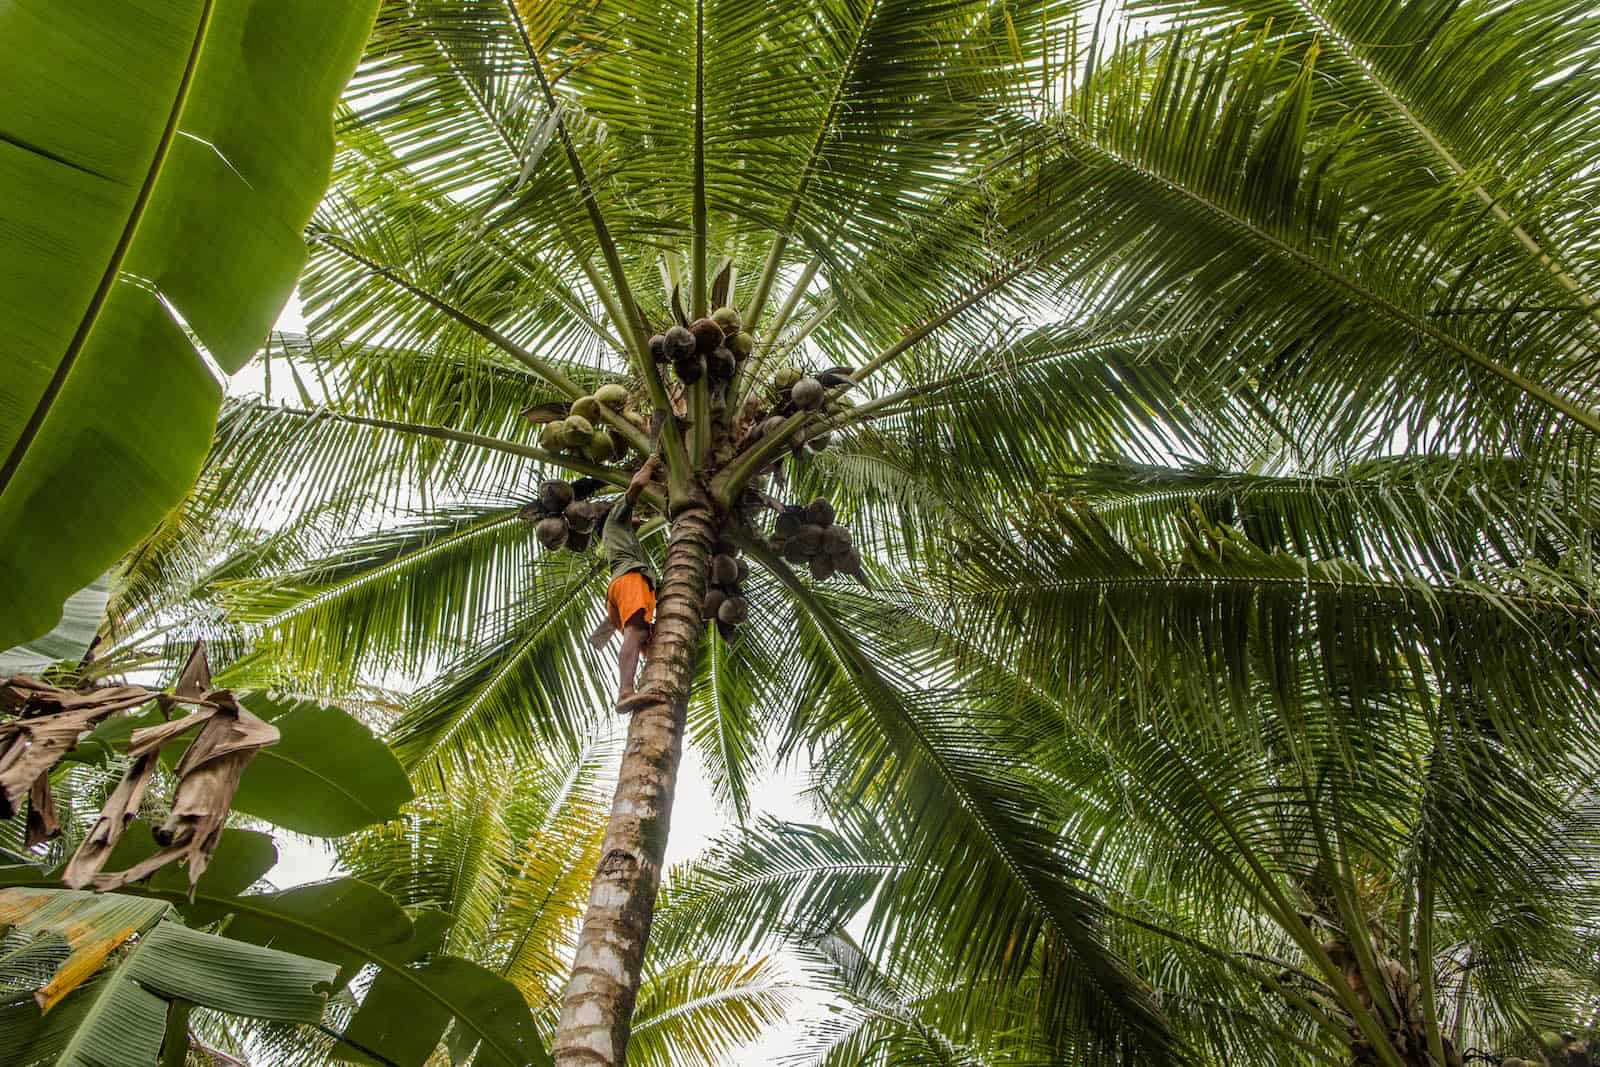 A man in orange shorts and a green shirt climbs a tall palm tree, reaching for coconuts, a risky job with no equipment.